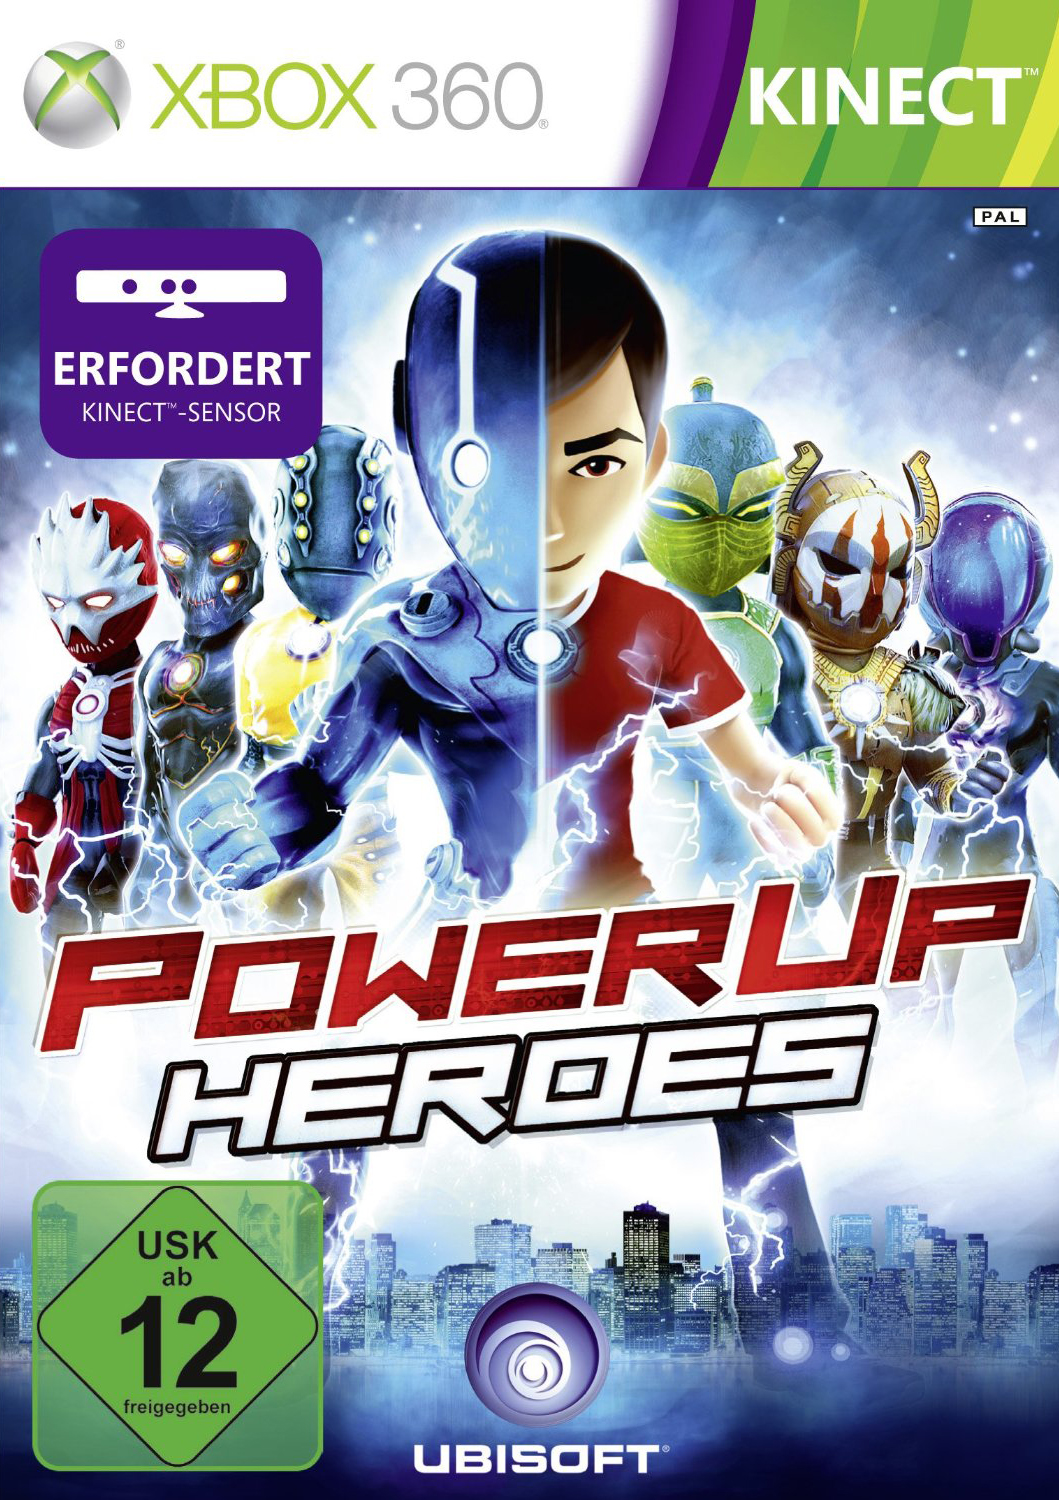 https://img.webme.com/pic/x/xbox360team/powerupheroes.jpg